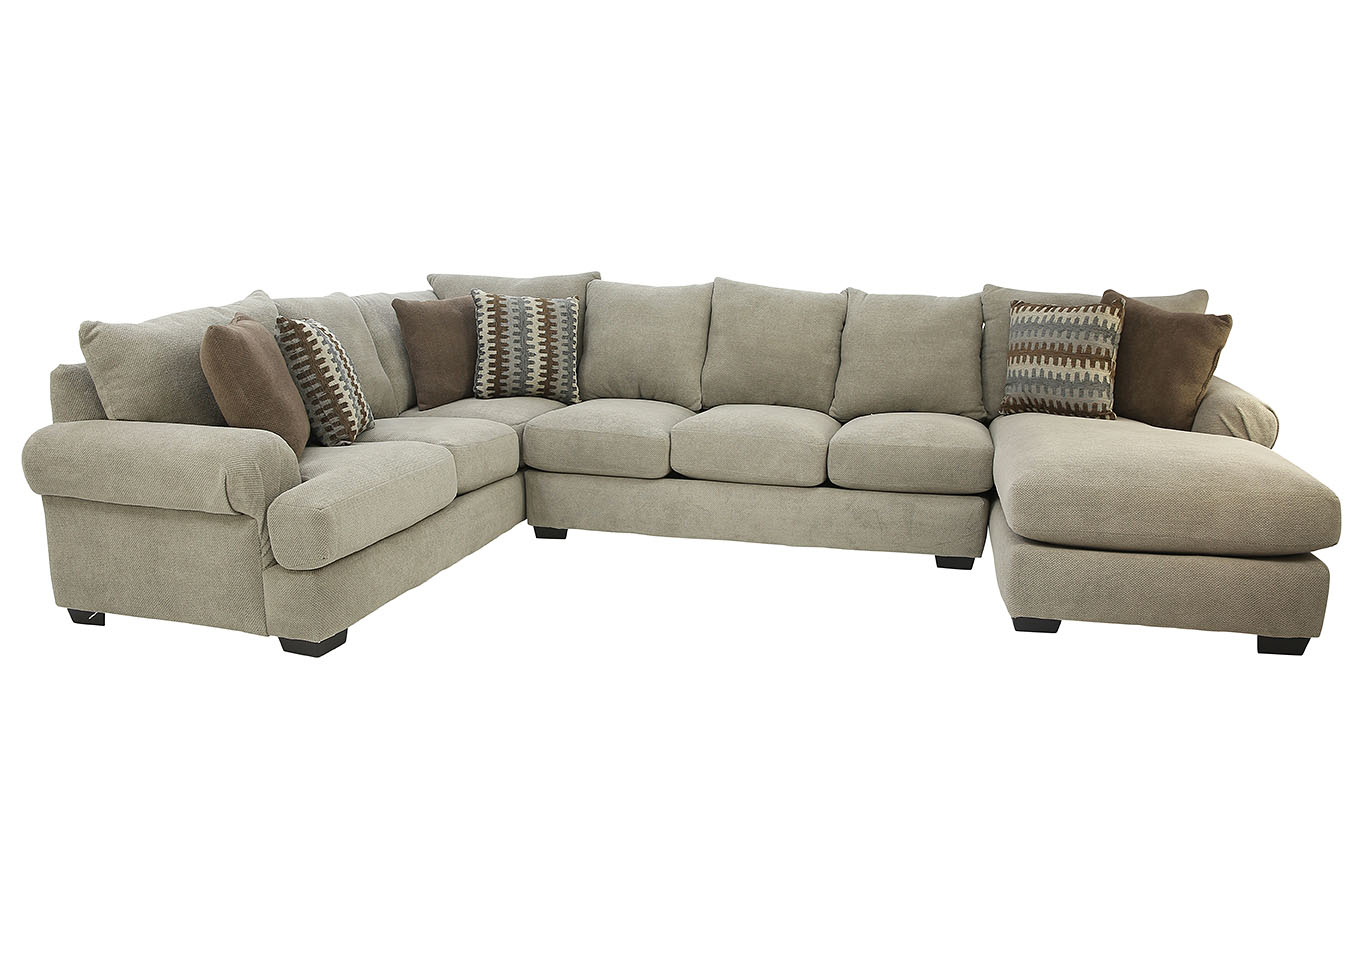 BACARAT 3 PIECE RIGHT ARM CHAISE SECTIONAL,CORINTHIAN FURNITURE